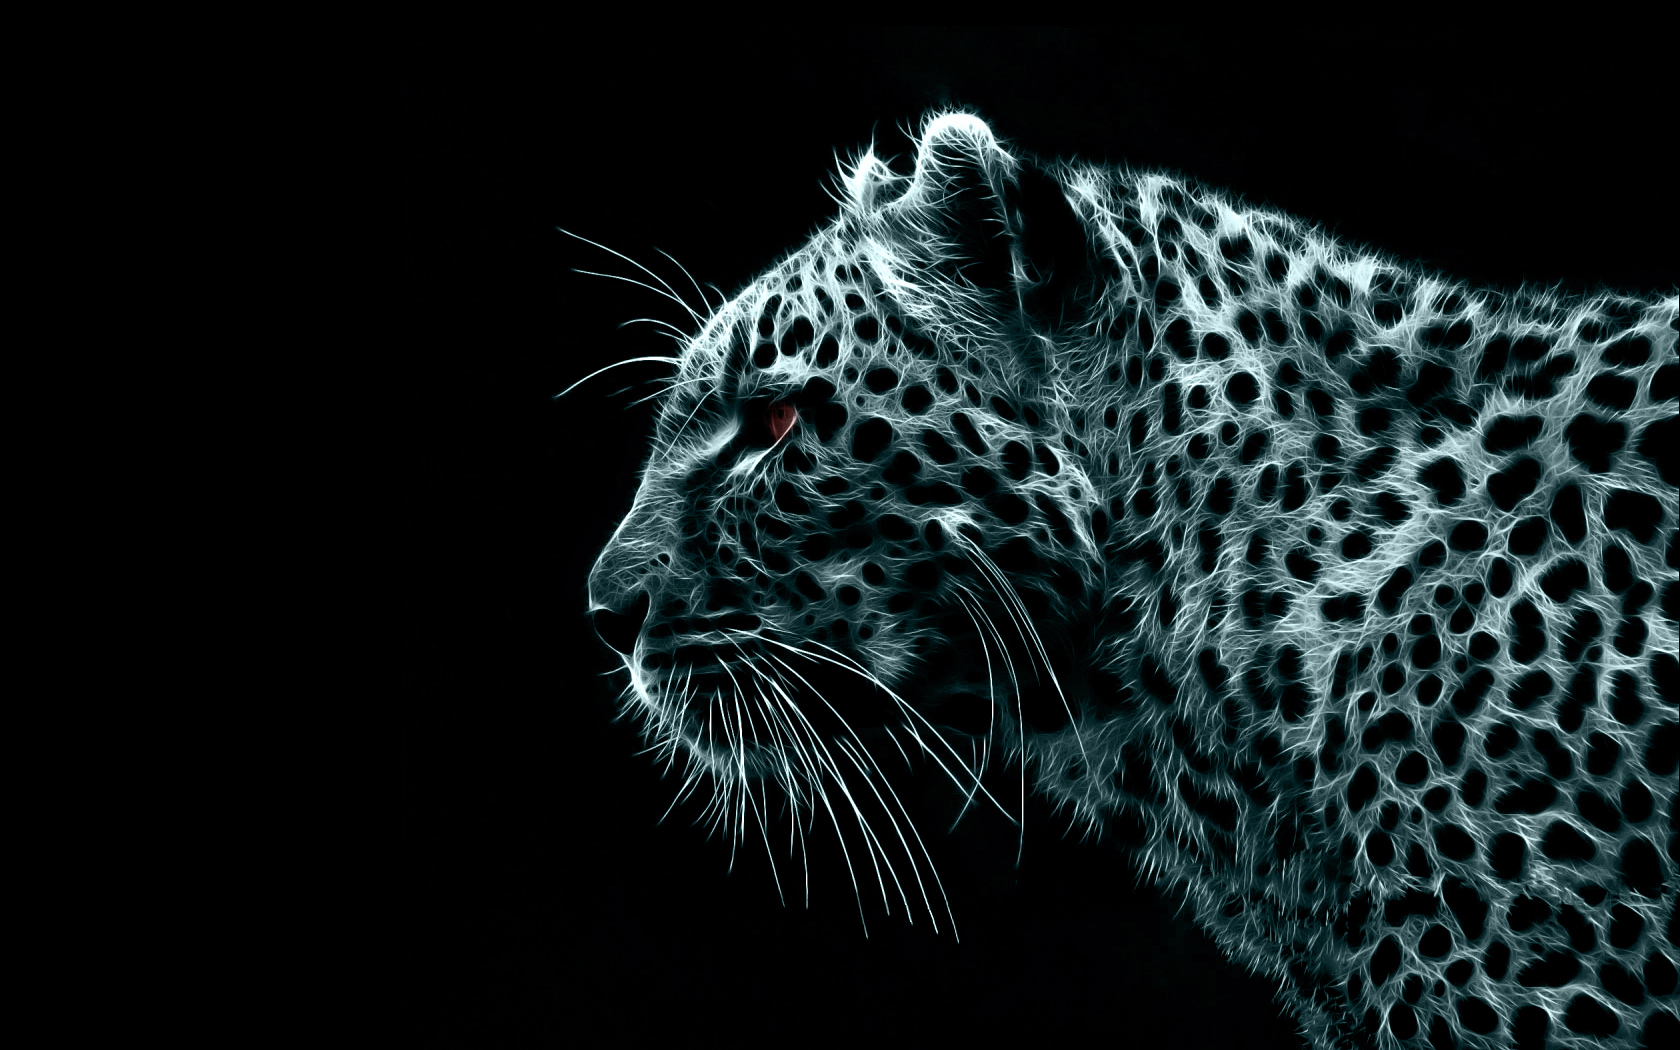 Free Download Beautiful Wild Panthers Wallpapers Tigers For Sale Hd Wallpapers 1680x1050 For Your Desktop Mobile Tablet Explore 44 Black Panther Hd Wallpaper Black Jaguar Wallpaper Black Leopard Wallpaper